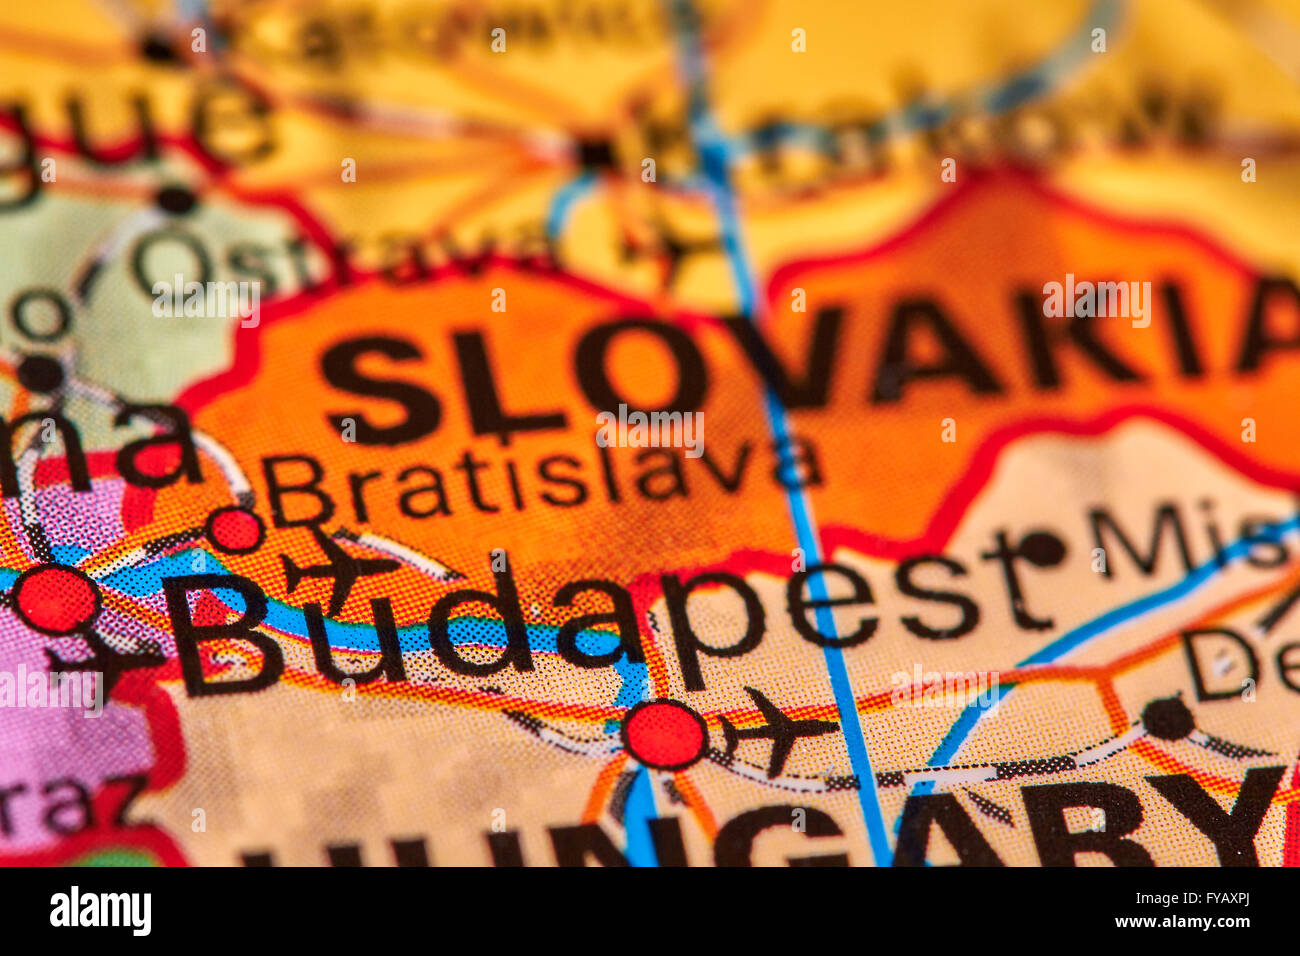 Budapest capital city of hungary on the world map stock photo budapest capital city of hungary on the world map gumiabroncs Image collections